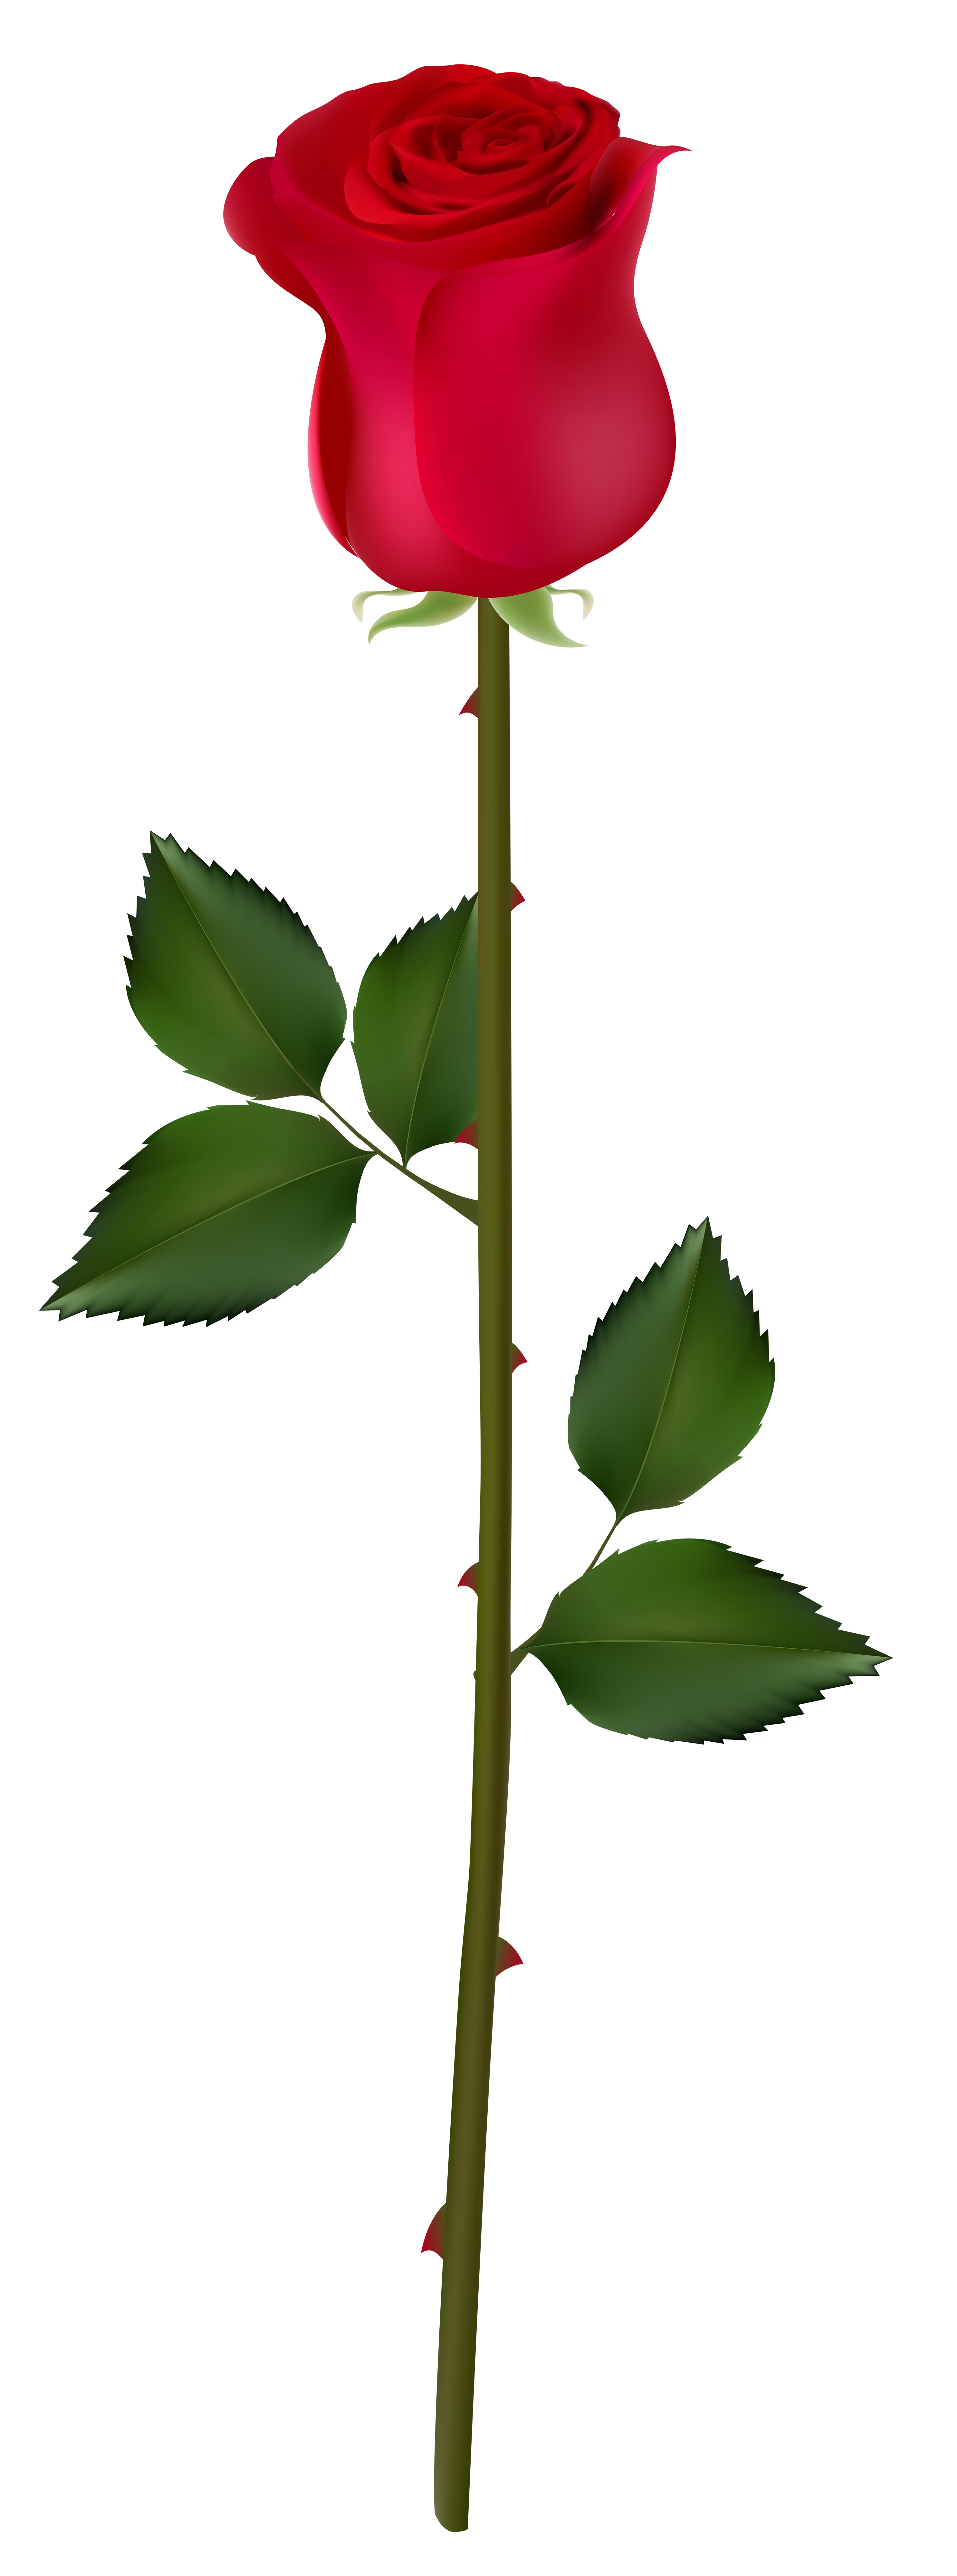 2971x8000 Edit And Free Download Red Rose Bud Png Image